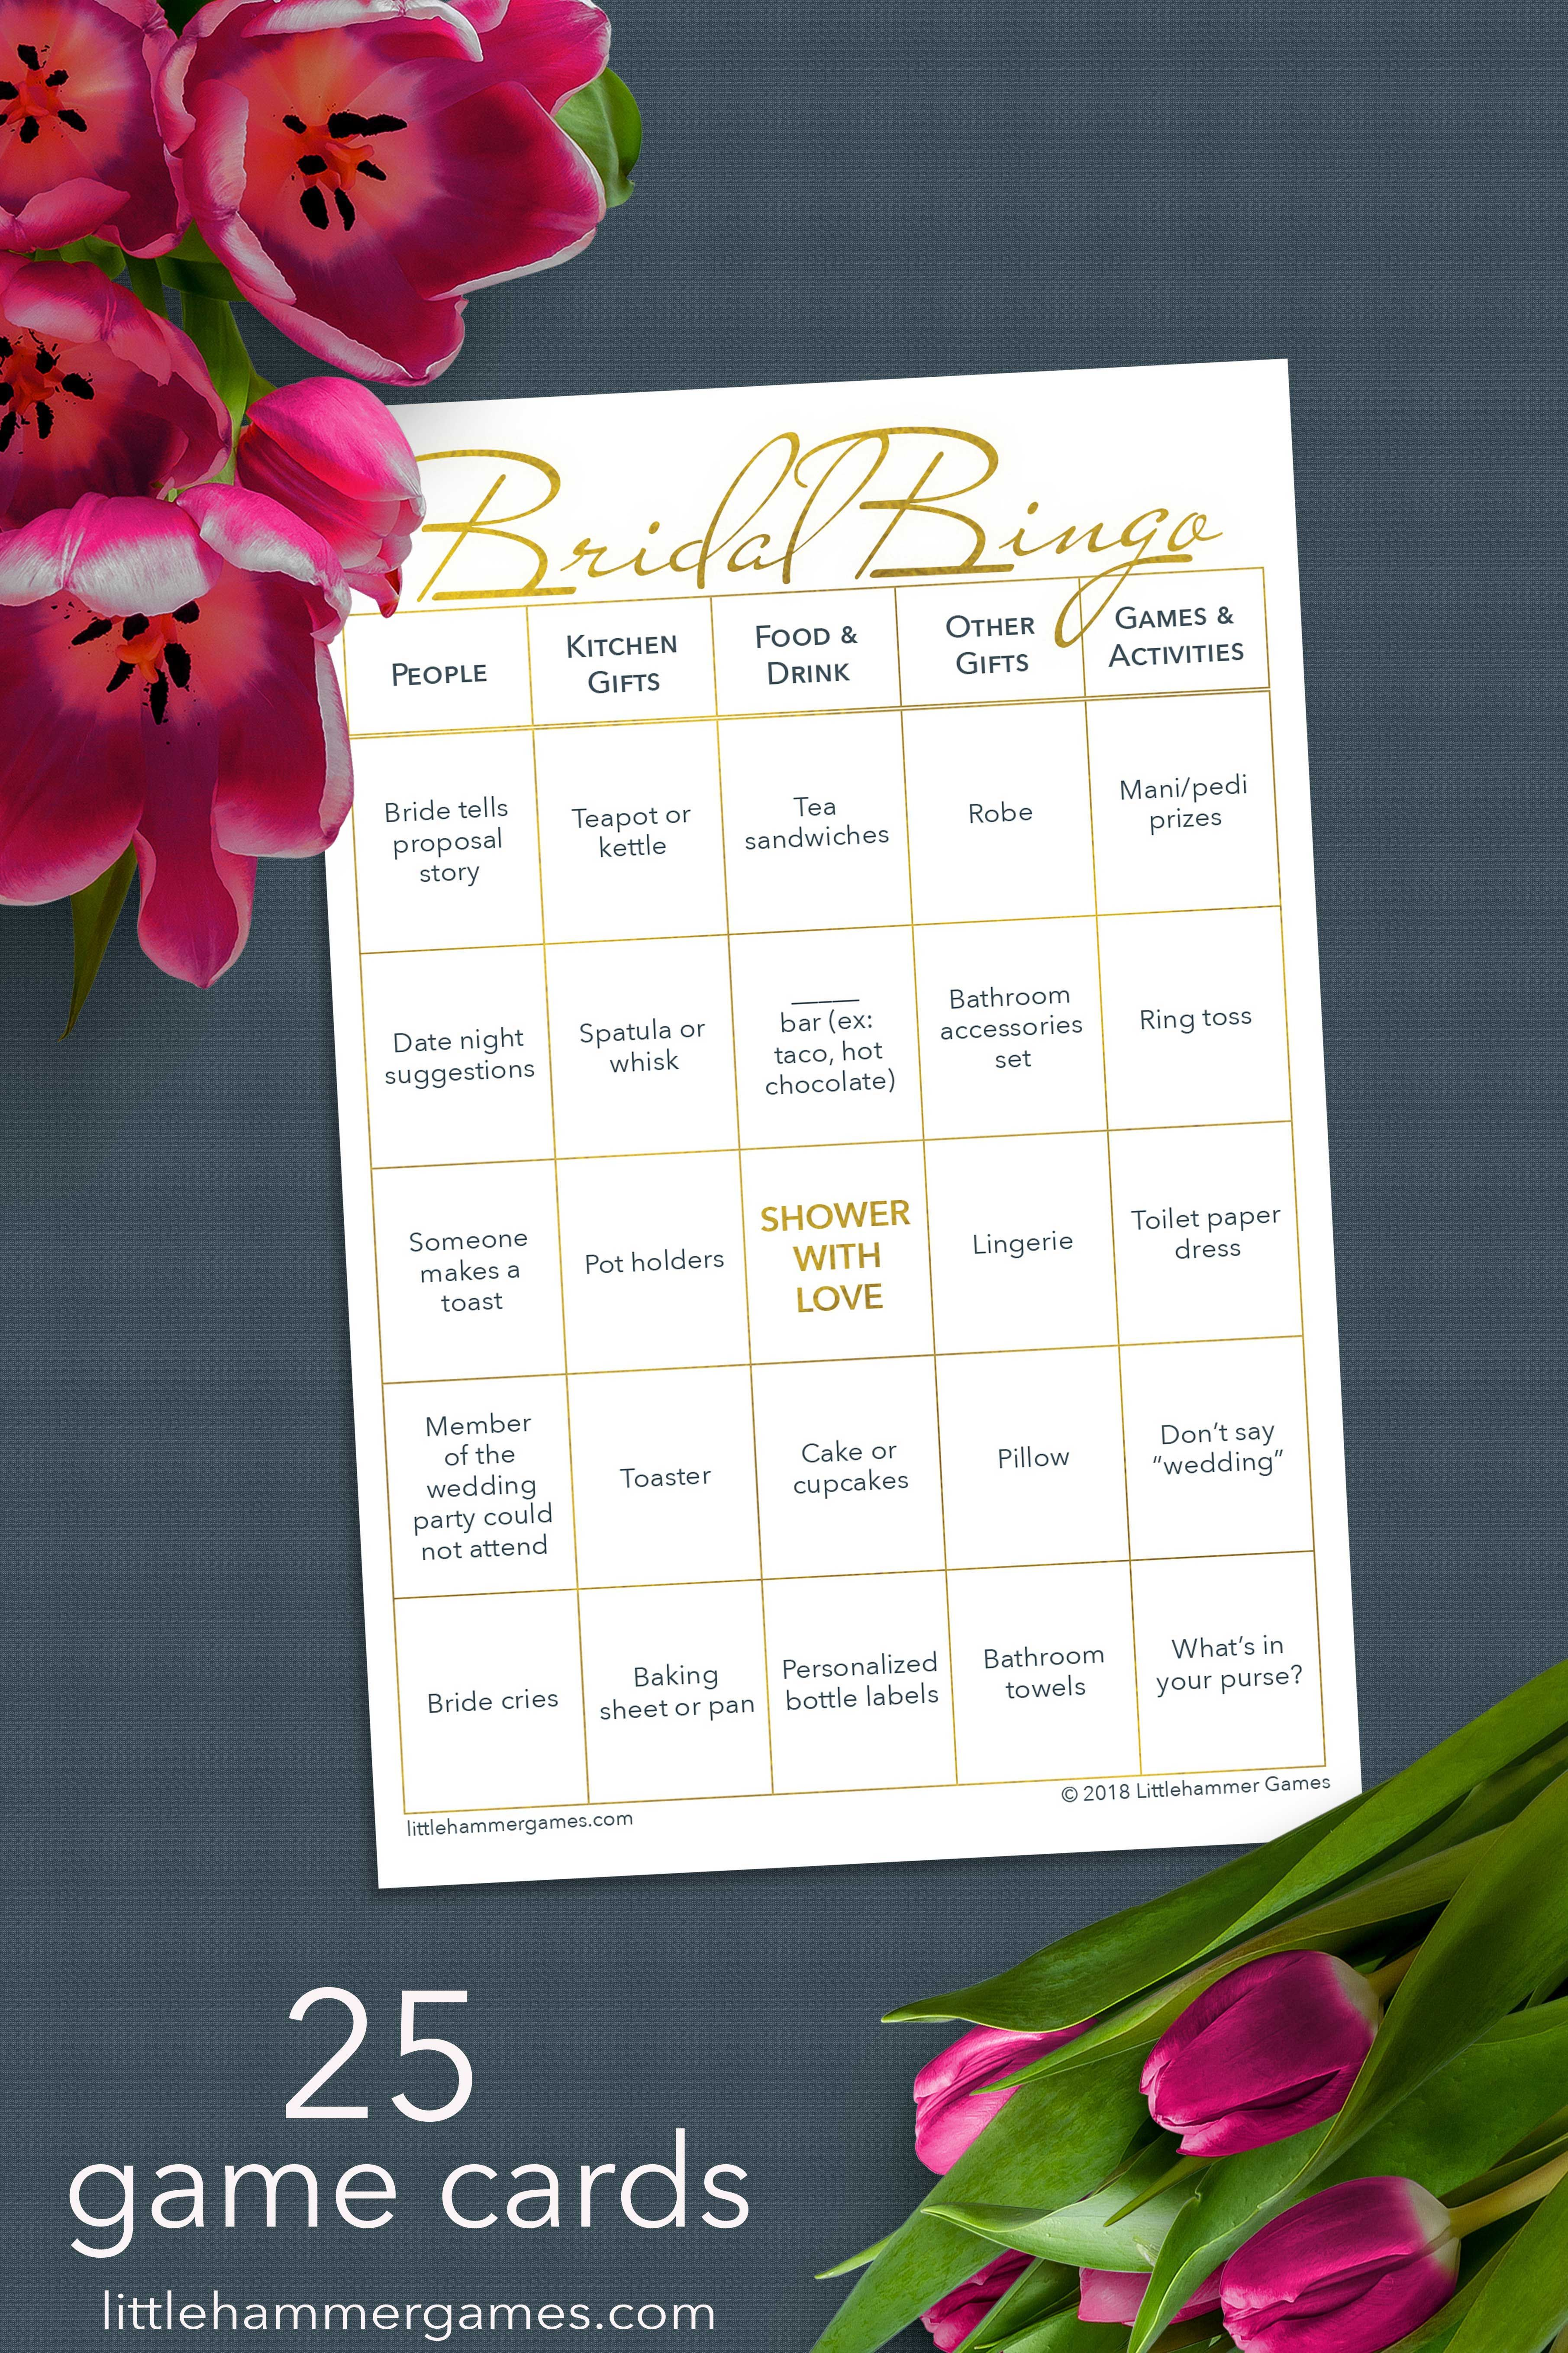 fun bridal shower game you can print at home bridal bingo in a gold geometric design on a marble background perfect for last minute party planning since